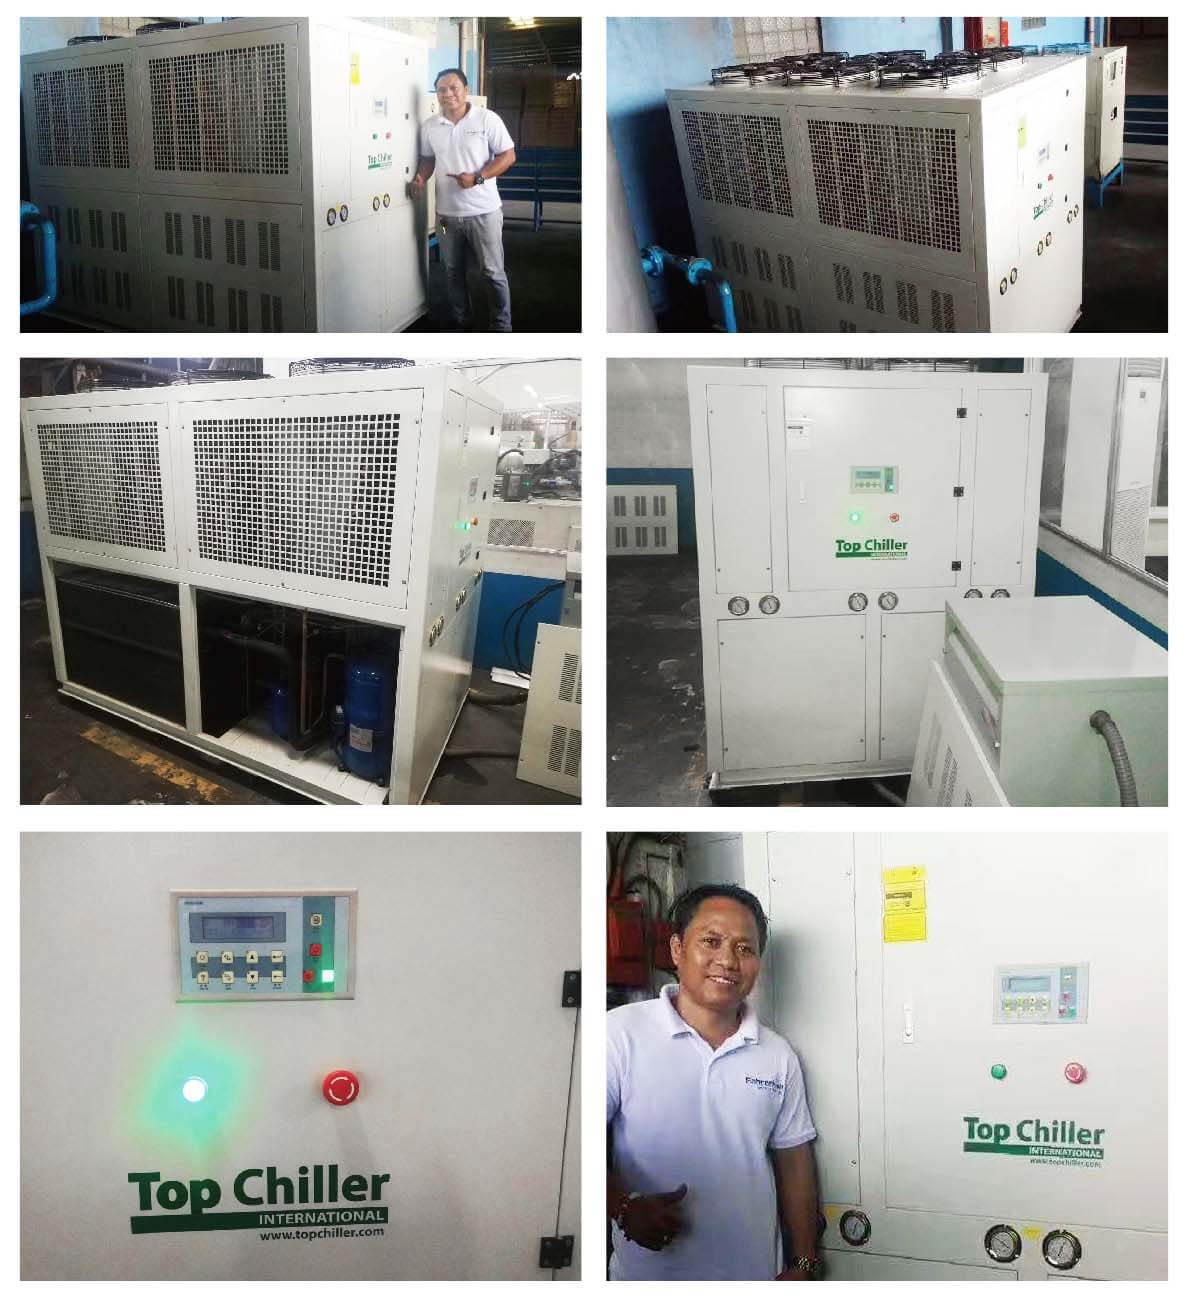 30Ton industrial air chiller Anodizing & Plating Processes